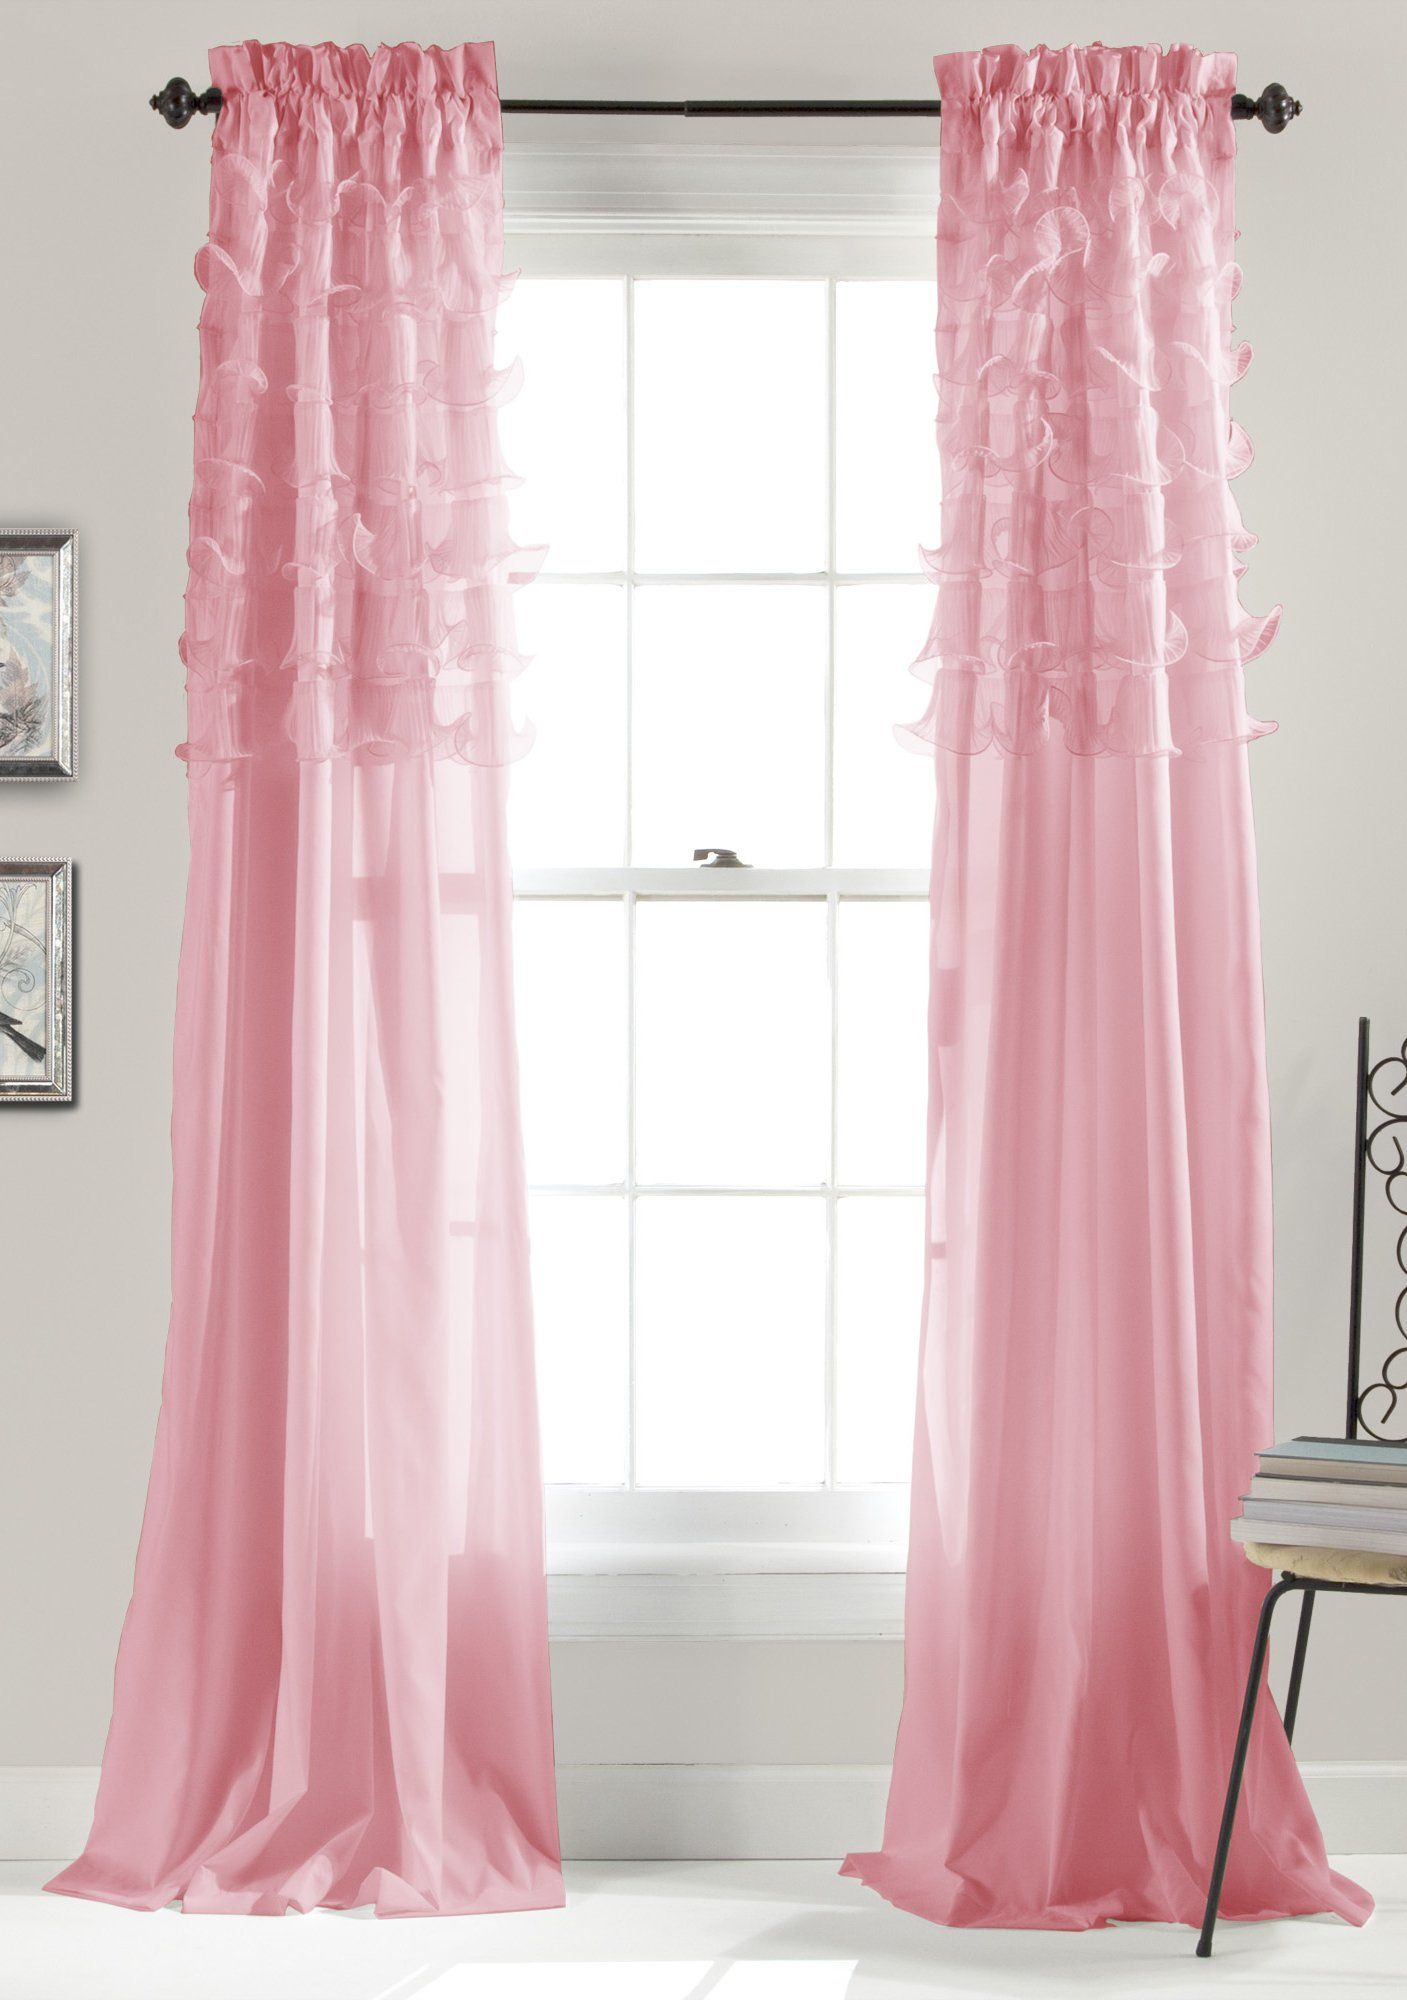 Nursery window ideas  lush decor avery window curtains  by inch pink set of